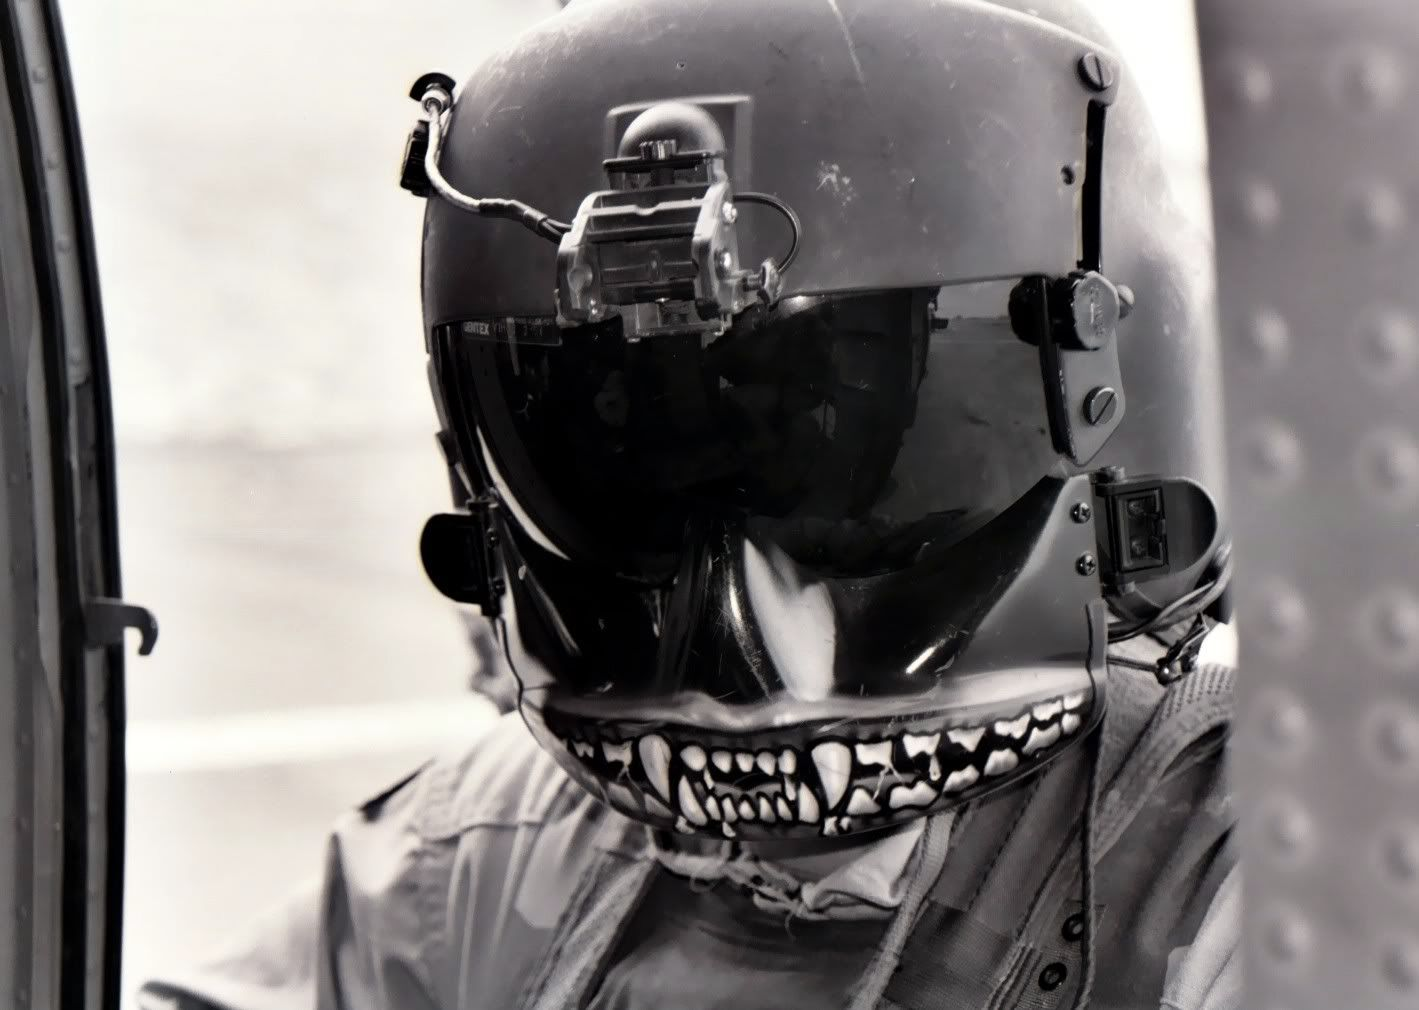 painted face masks scary US air force pilot - Google Search | BAMF ...